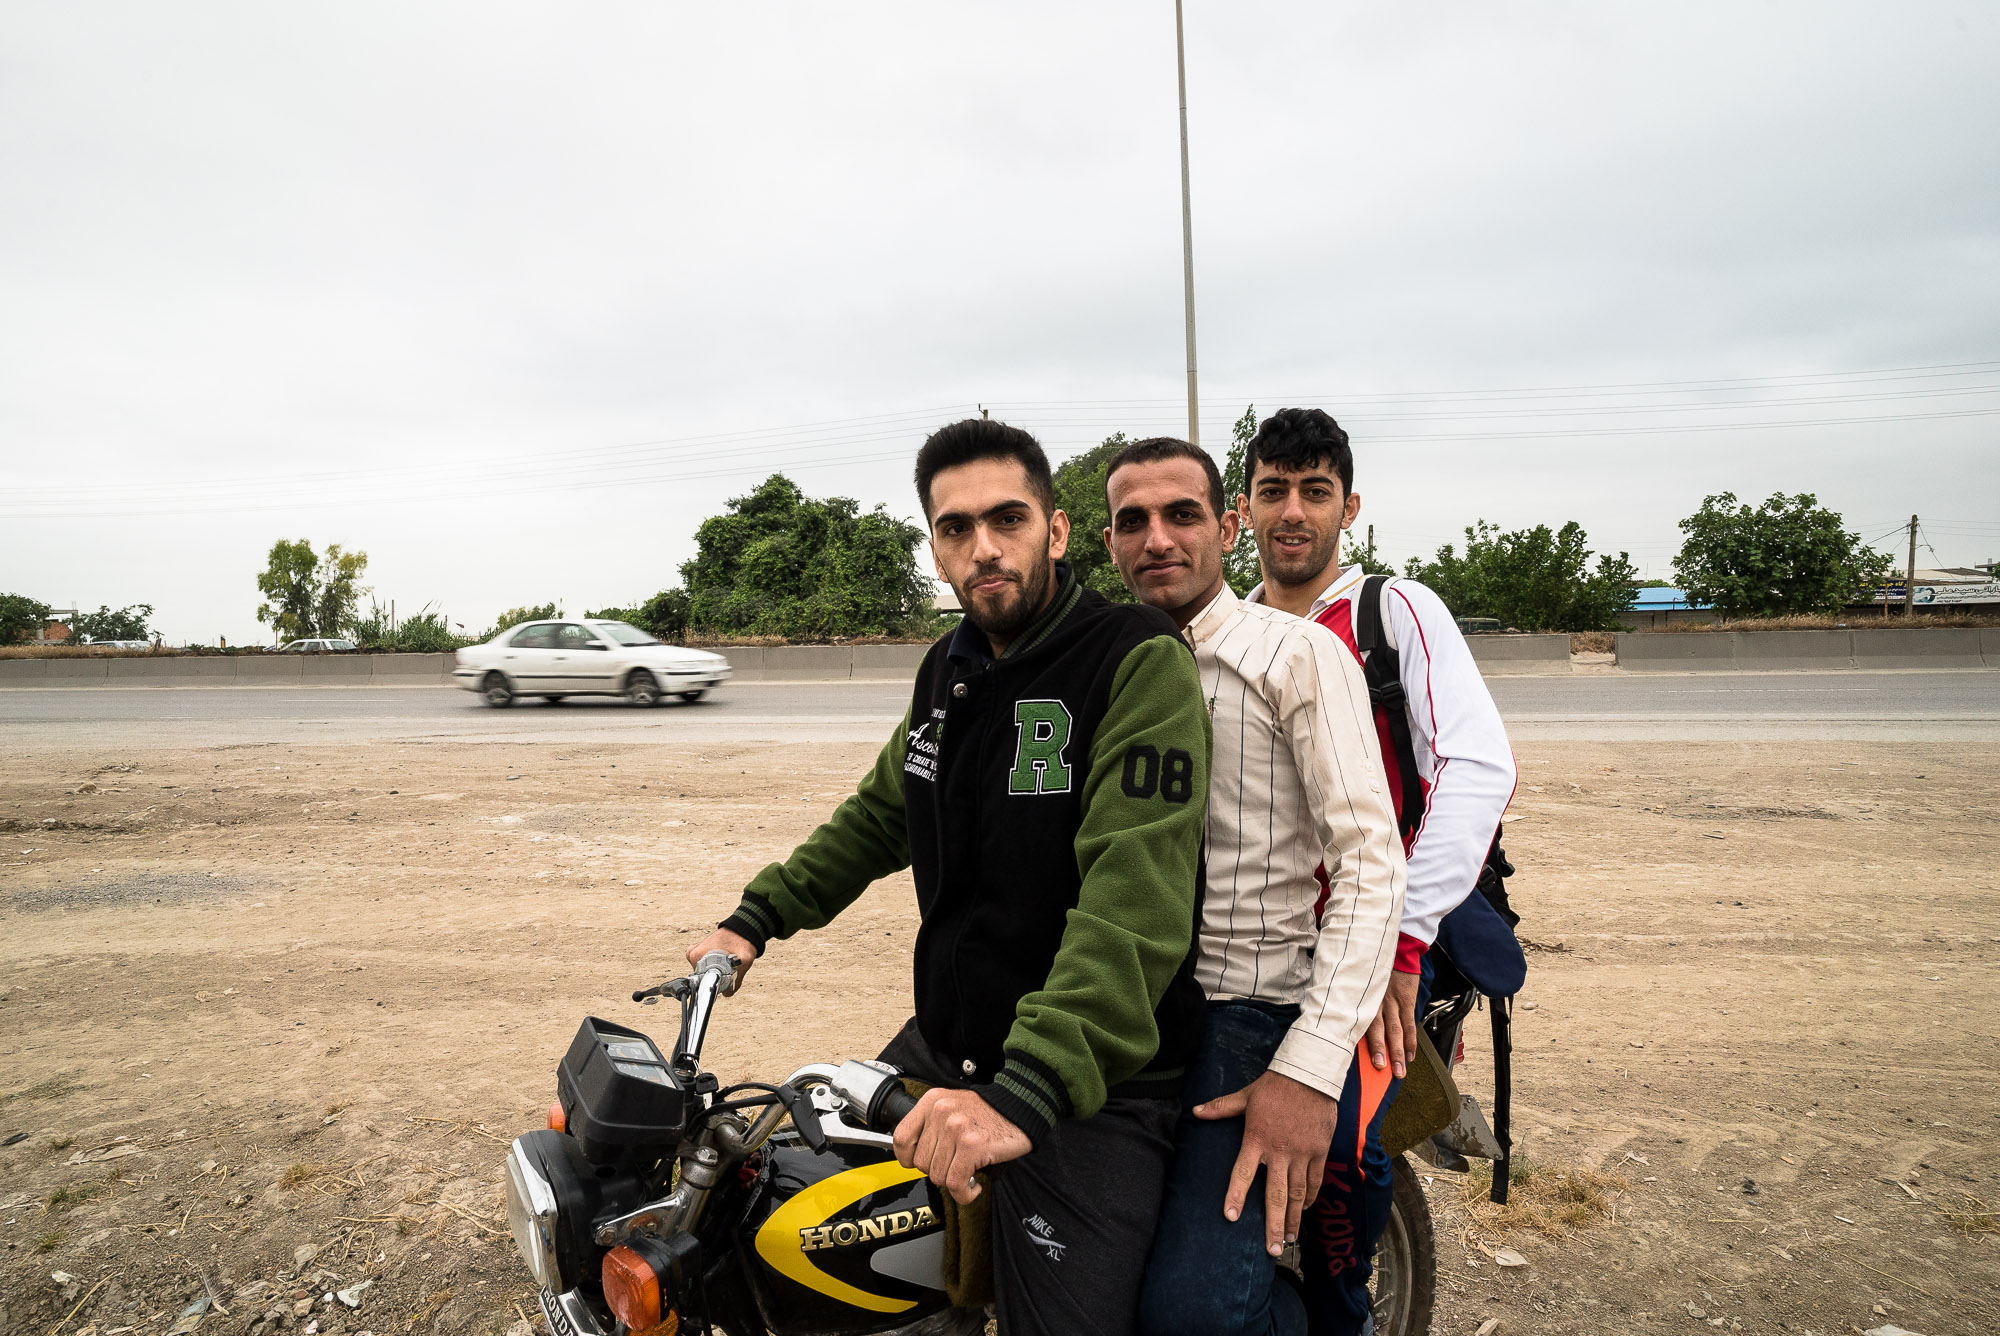 dudes on motorcycle